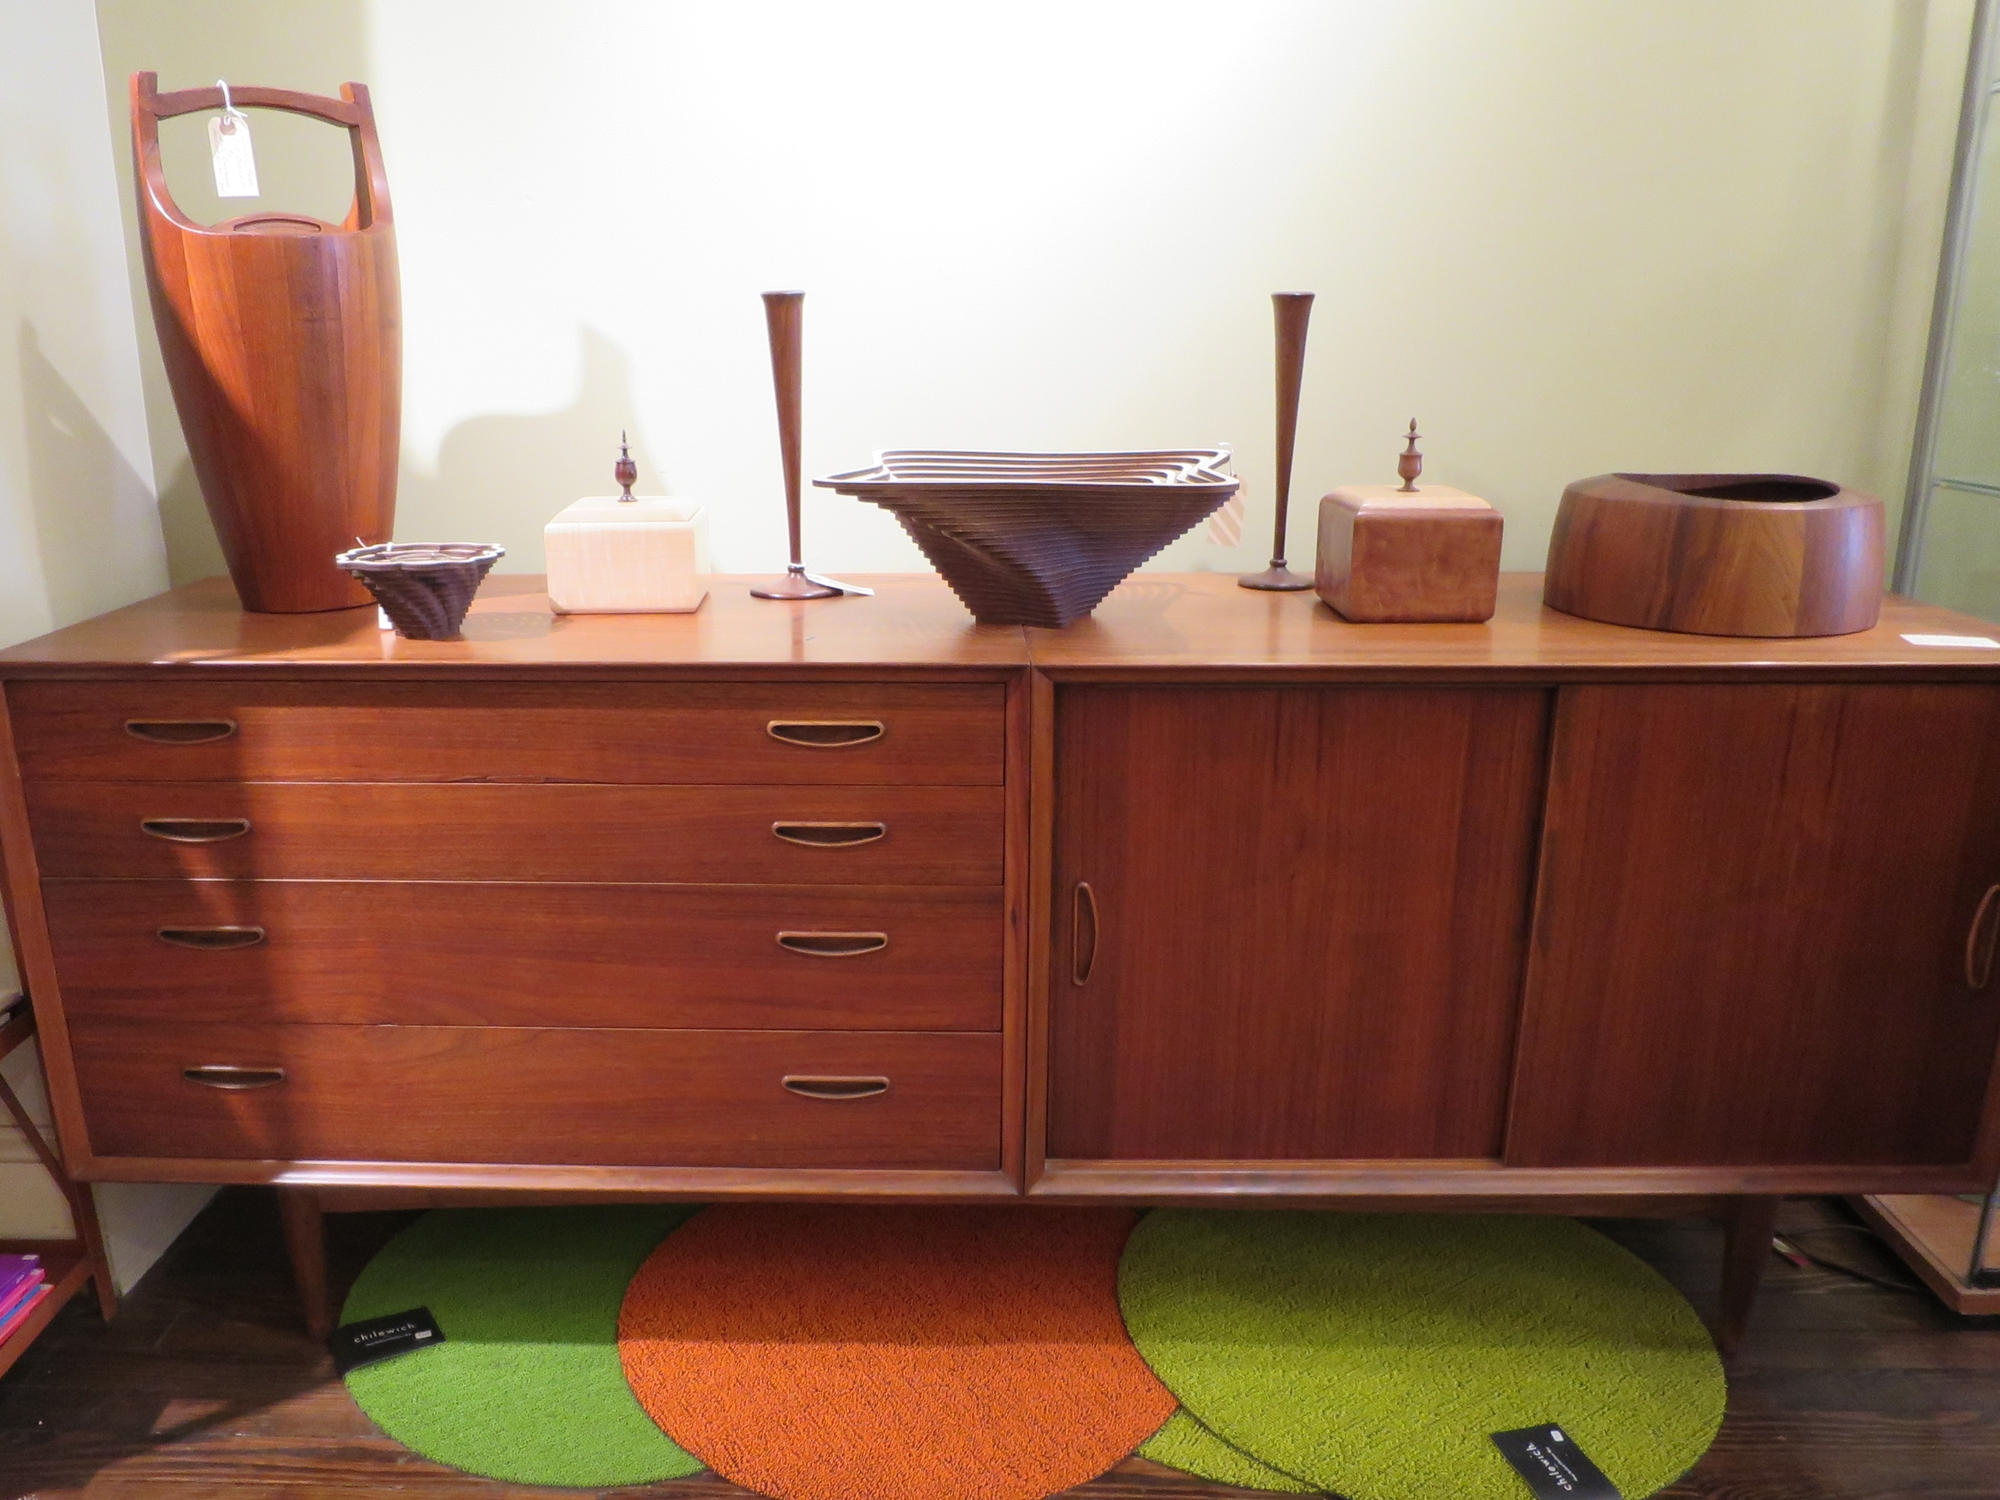 I popped into the Mid Century Modern furniture shop Paradiso  which smelled  much better but made my wallet cry sad  sad tears. My Weekend with The Baltimore Baton   Day 1   Also Coffee